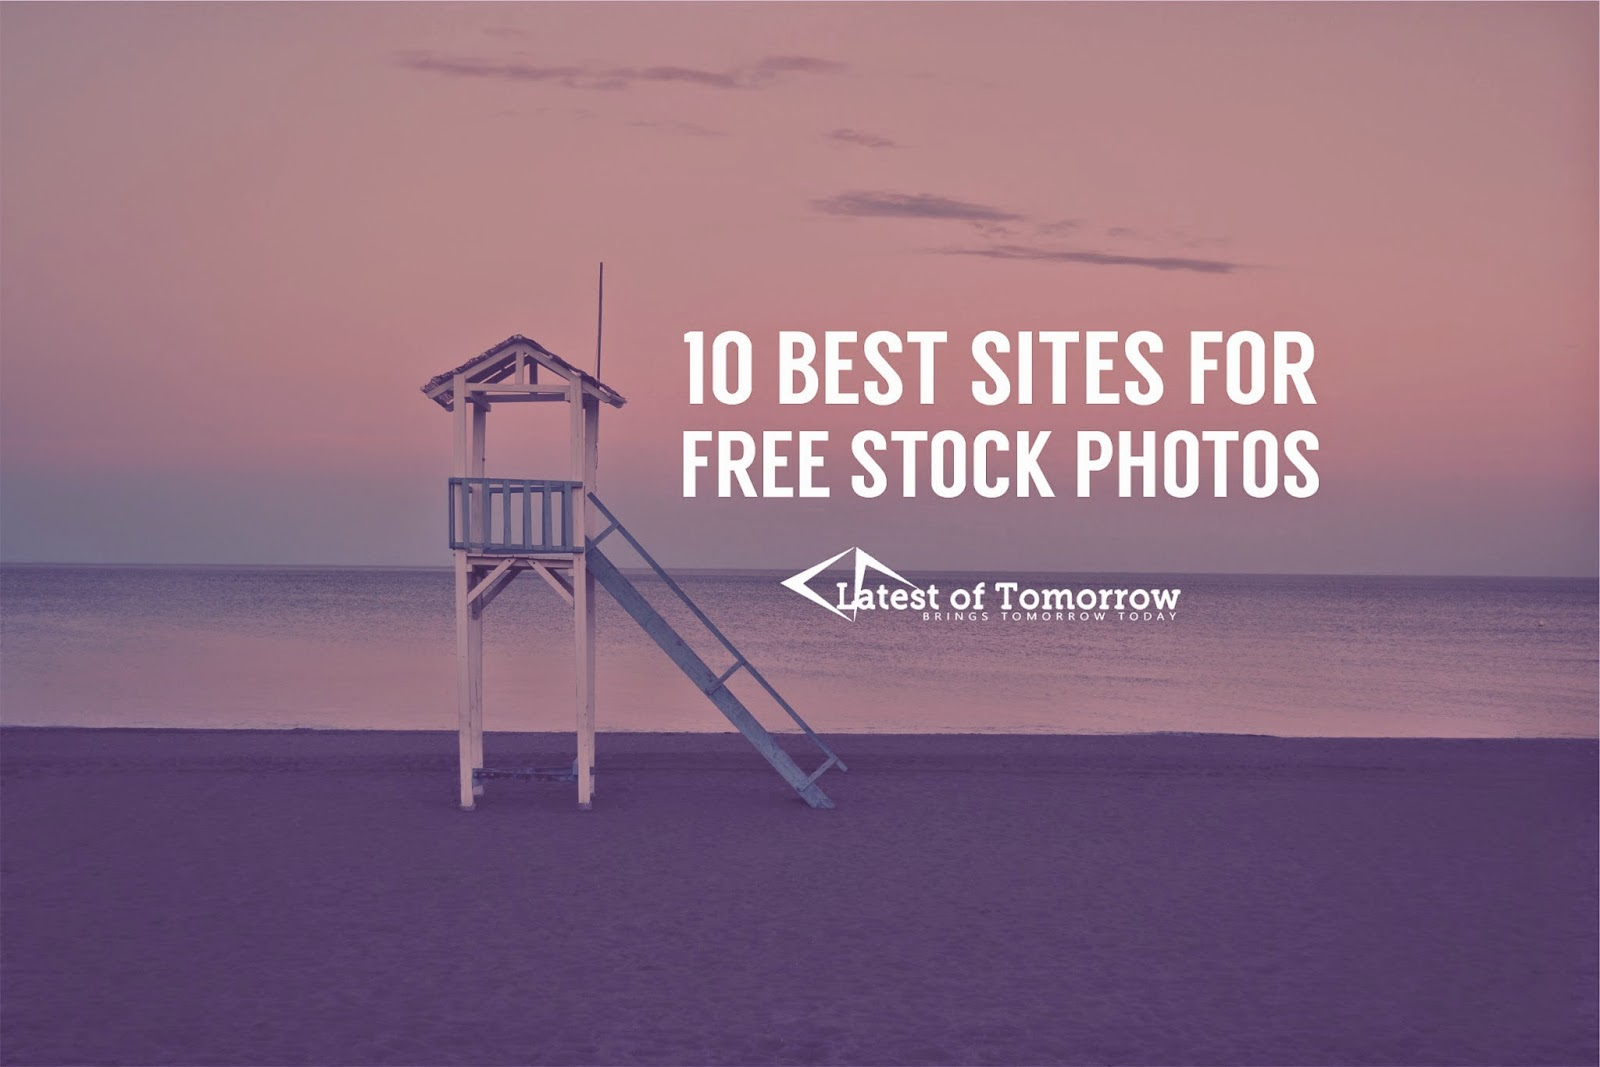 10 best websites to download stock photos for free